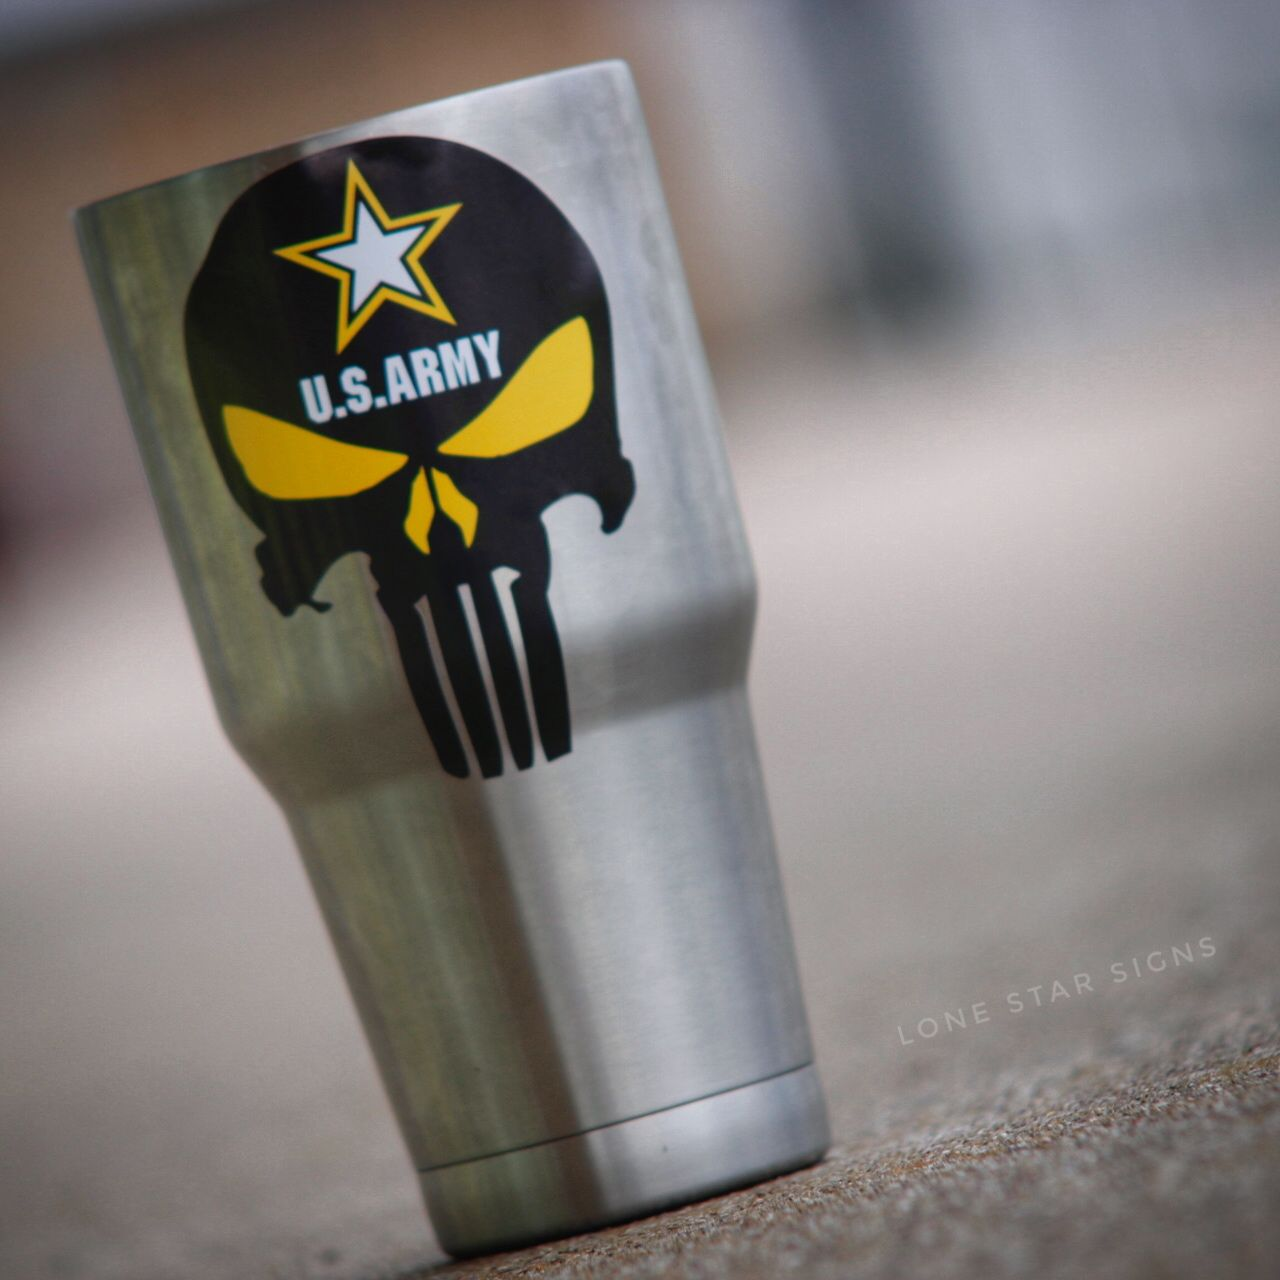 Us army stickers made by lone star signs get them online👇👇 💥www